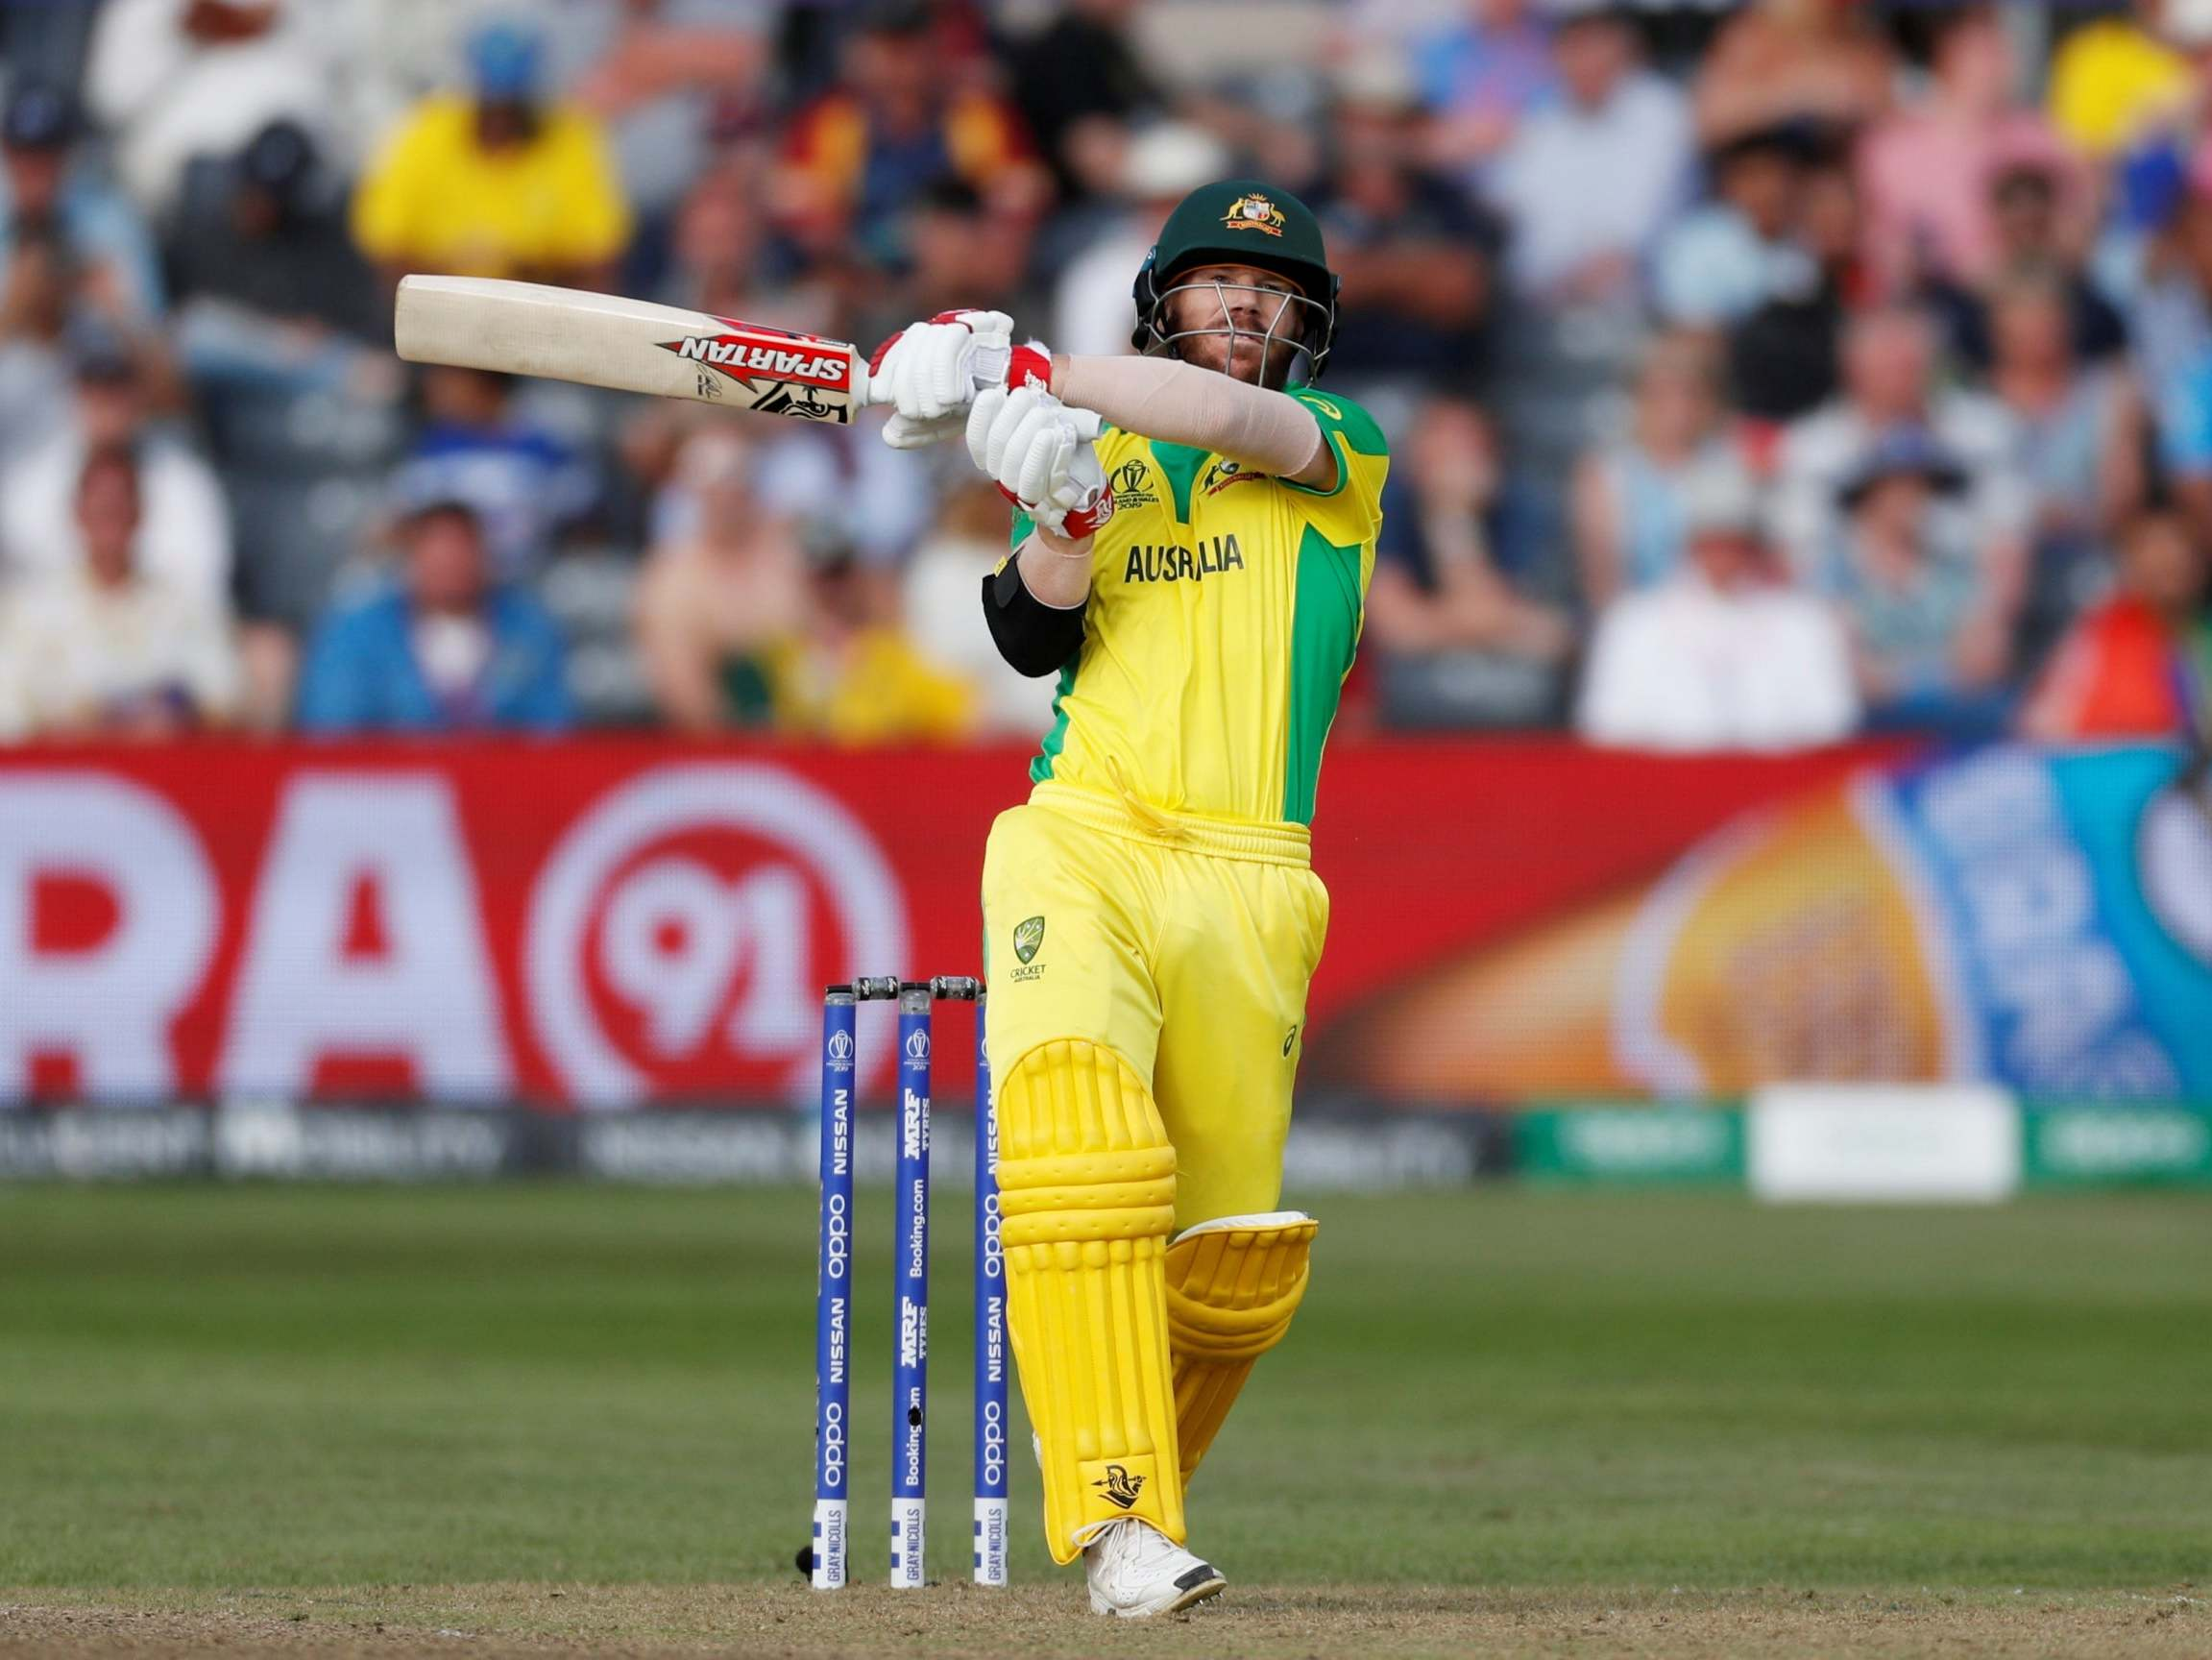 Cricket World Cup 2019 English Crowds Stupid To Jeer